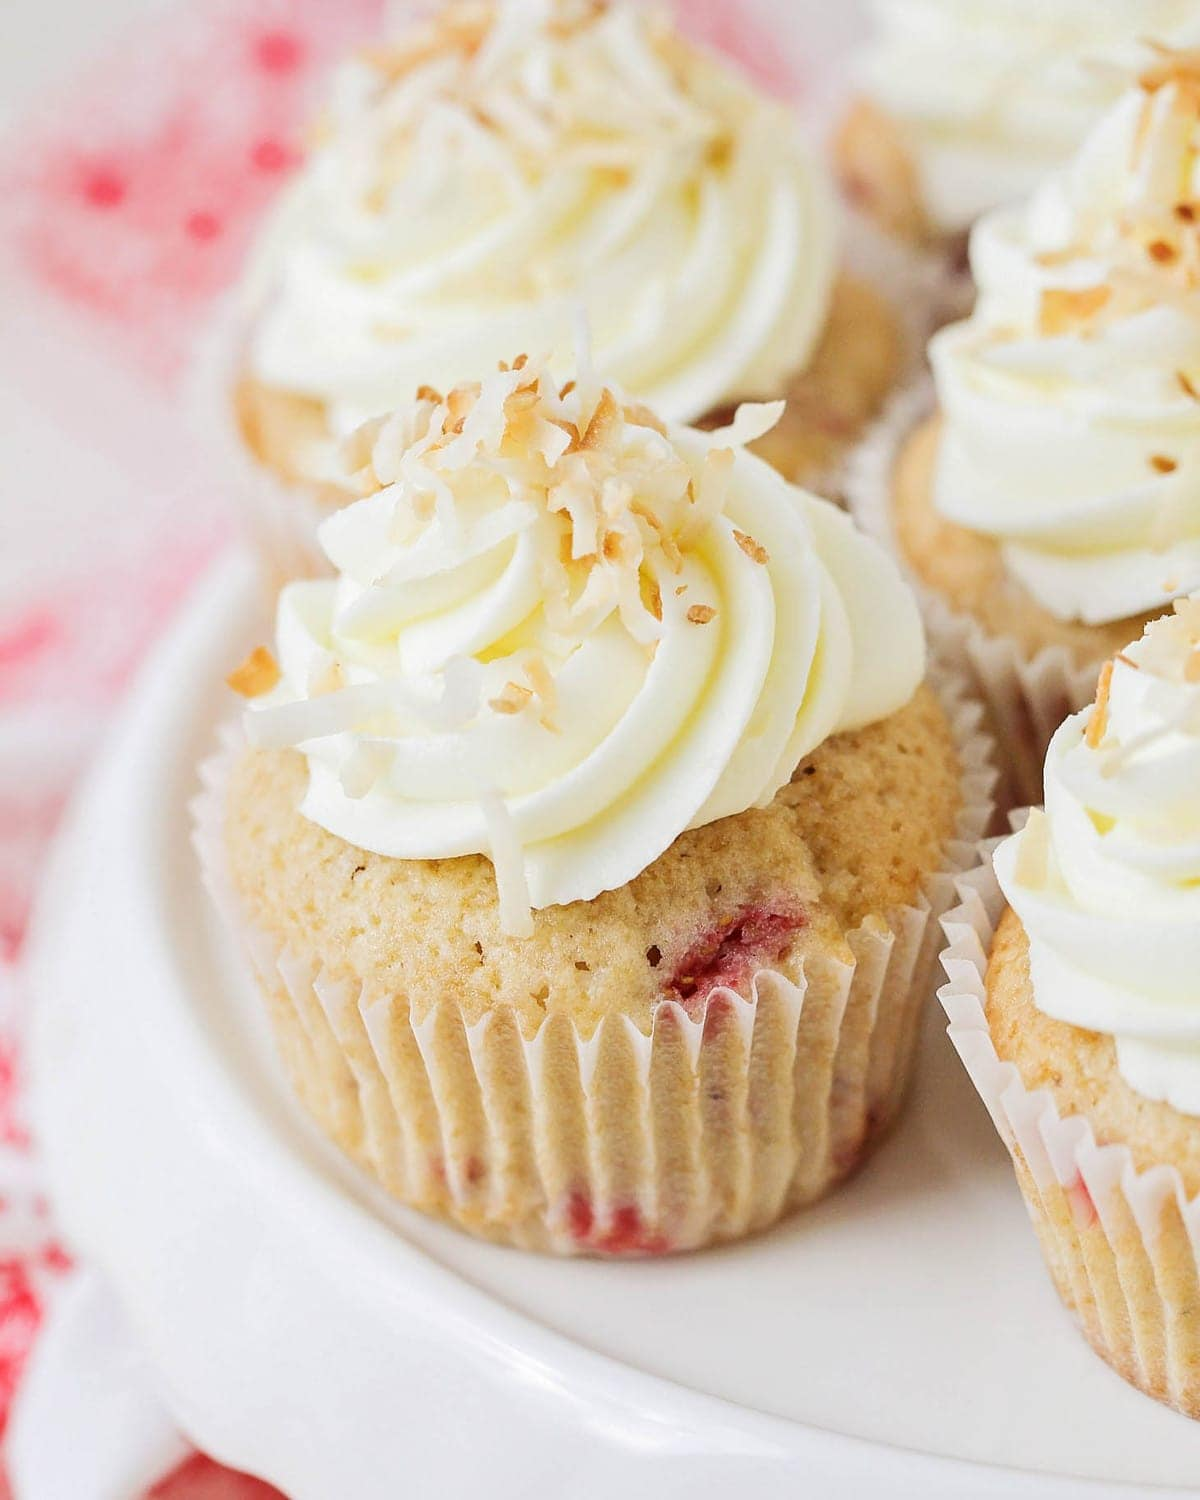 Strawberry cupcake recipe - topped with cream cheese frosting and coconut